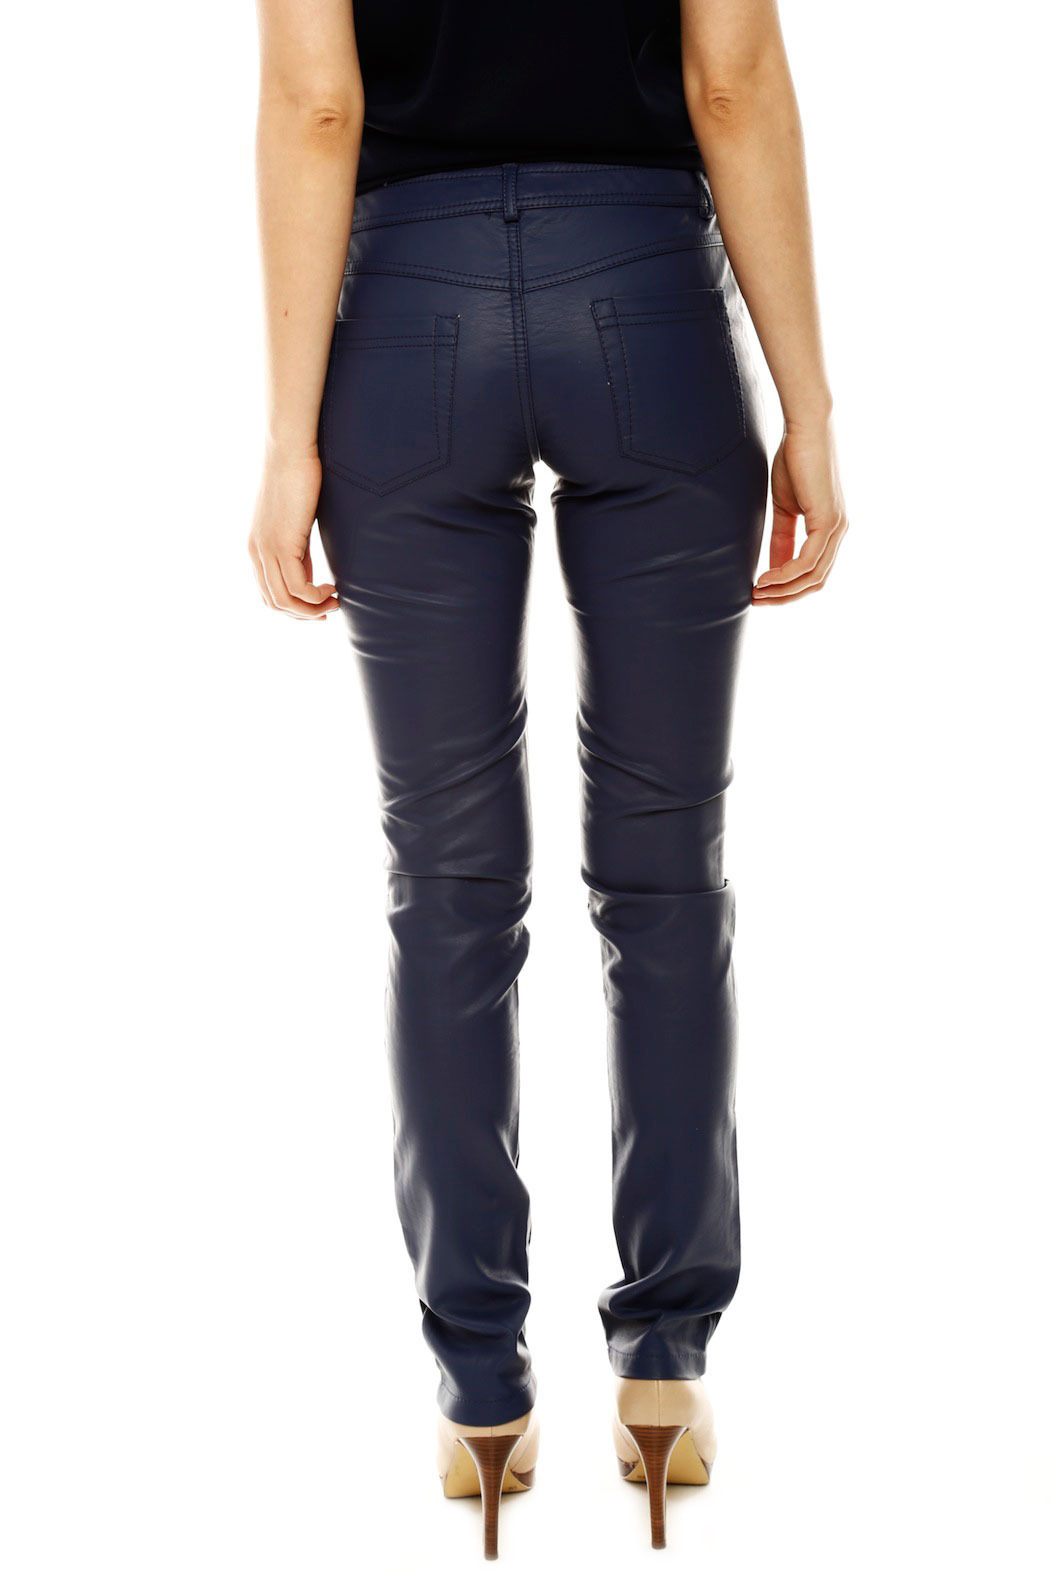 Laura Jo Navy Faux Leather Pants - Back Cropped Image